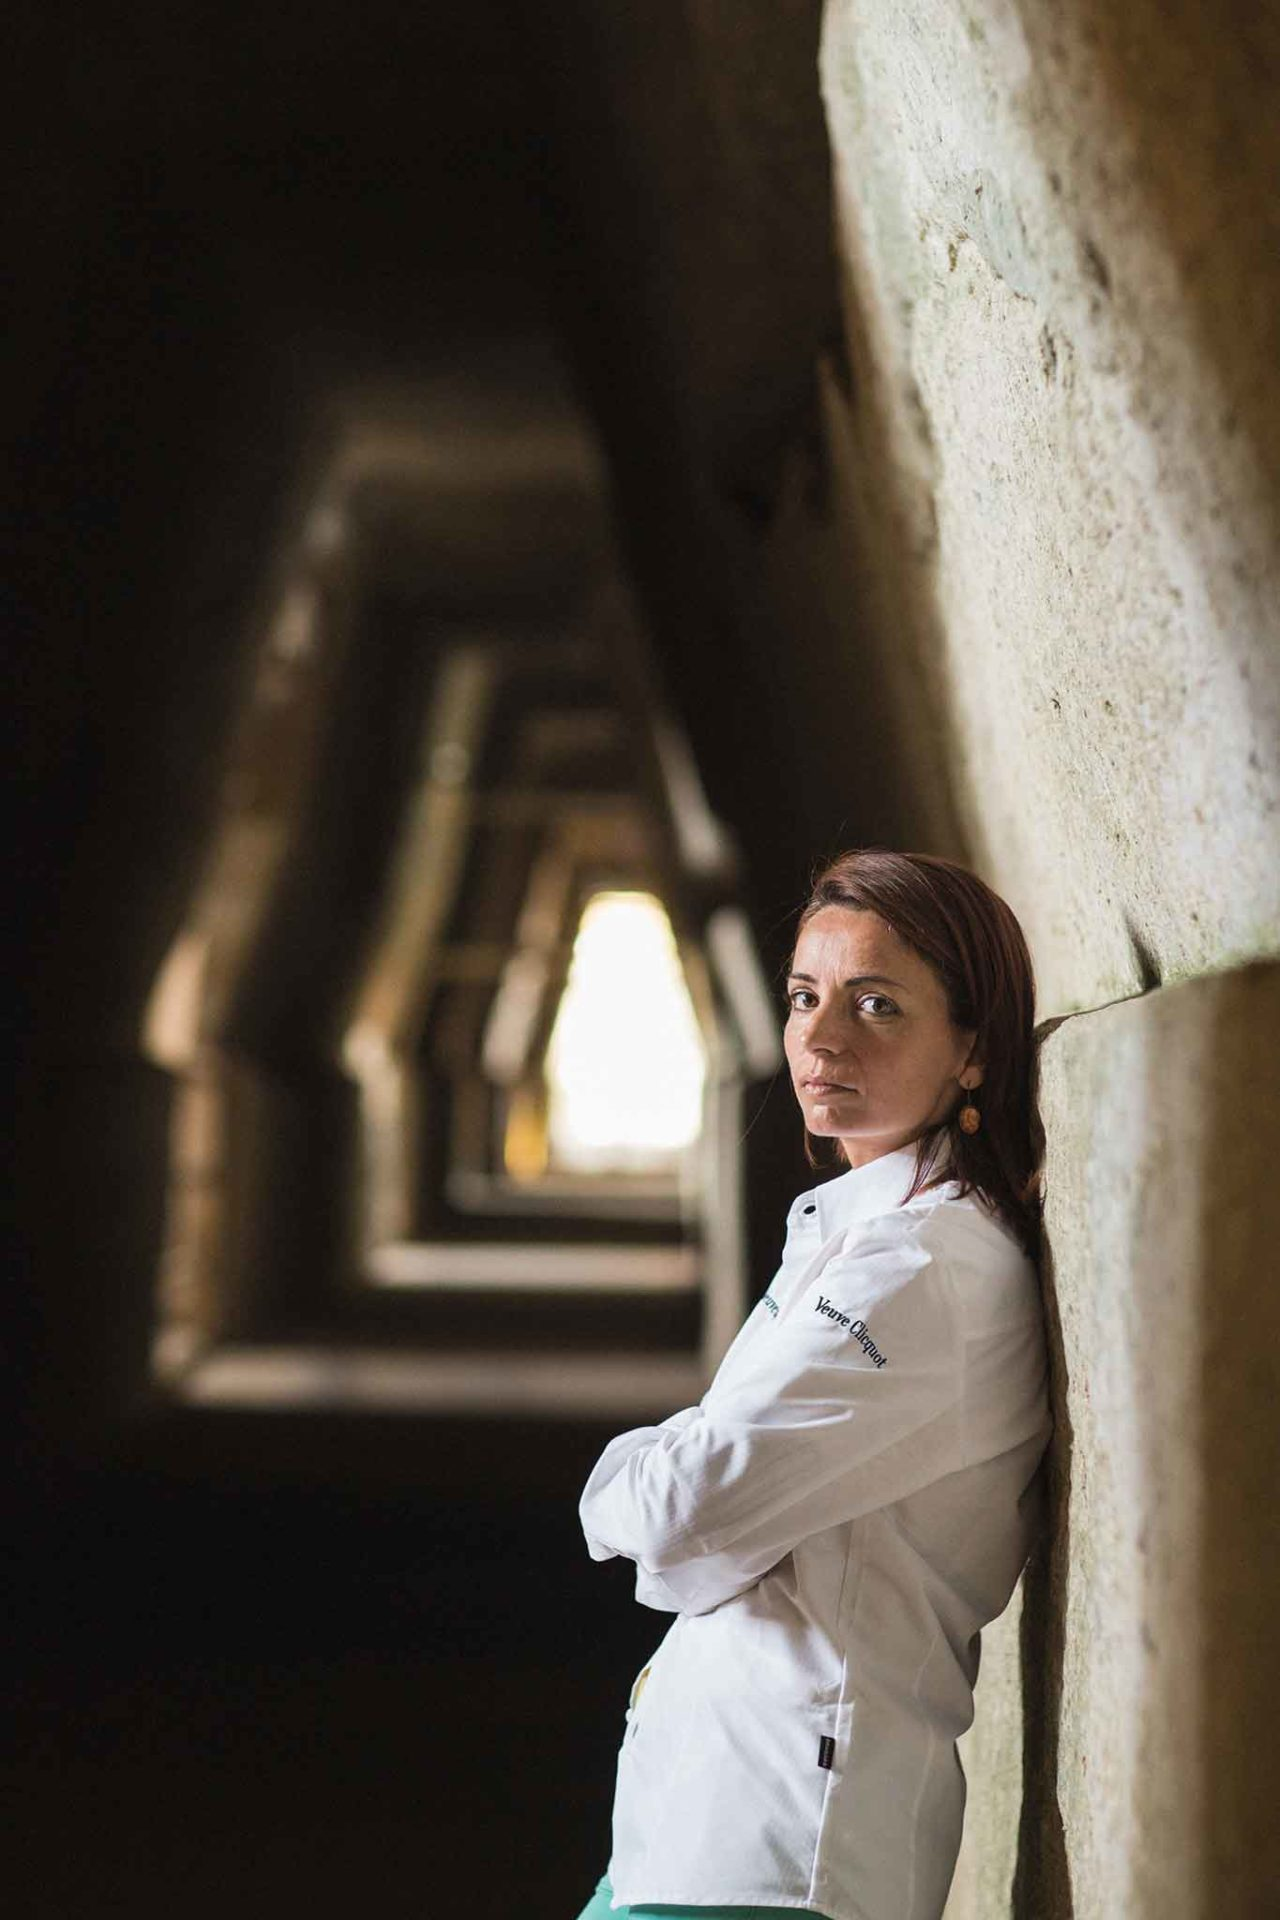 Marianna Vitale Guida Michelin chef donna